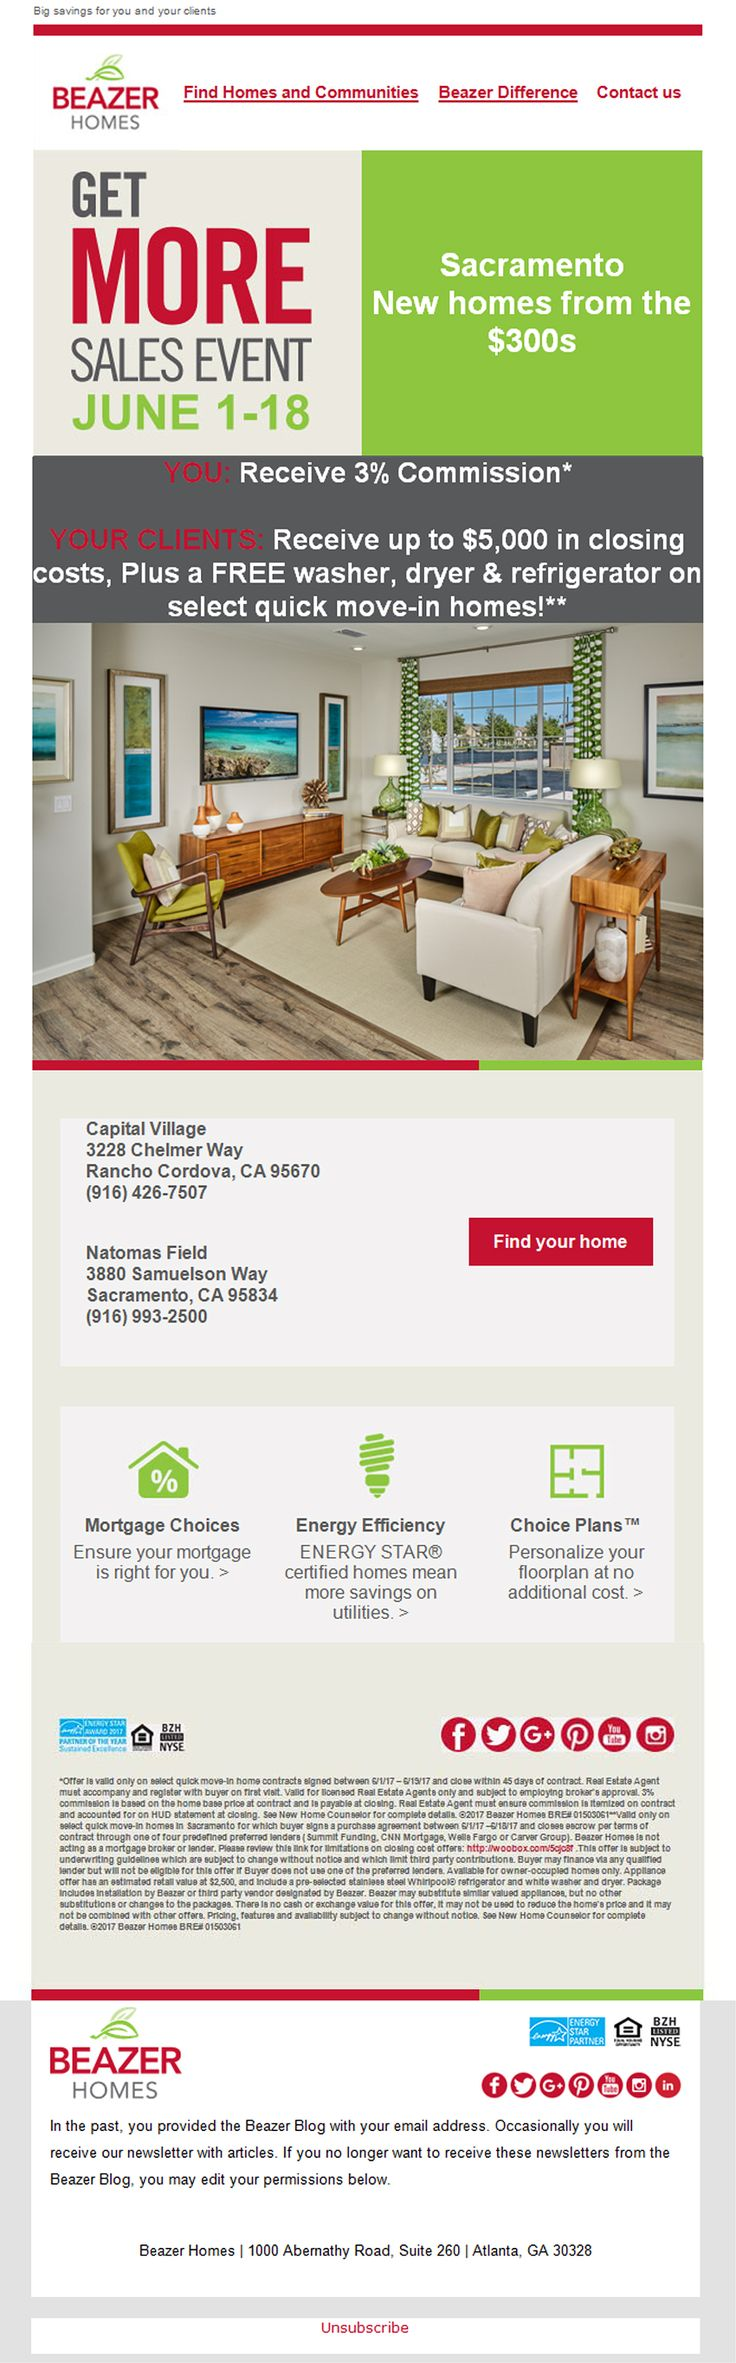 New Homes for Sale in Sacramento  Beazer's Get More Sales Event is Here!  Broker's Welcome  |  June 1 - 18  |  3% Commission  |  Clients Receive up to $5,000 in Closing Costs, Plus a FREE Washer, Dryer & Refrigerator on Select Quick Move-In Homes!  https://www.beazer.com/searchinventory-CA-sacramento